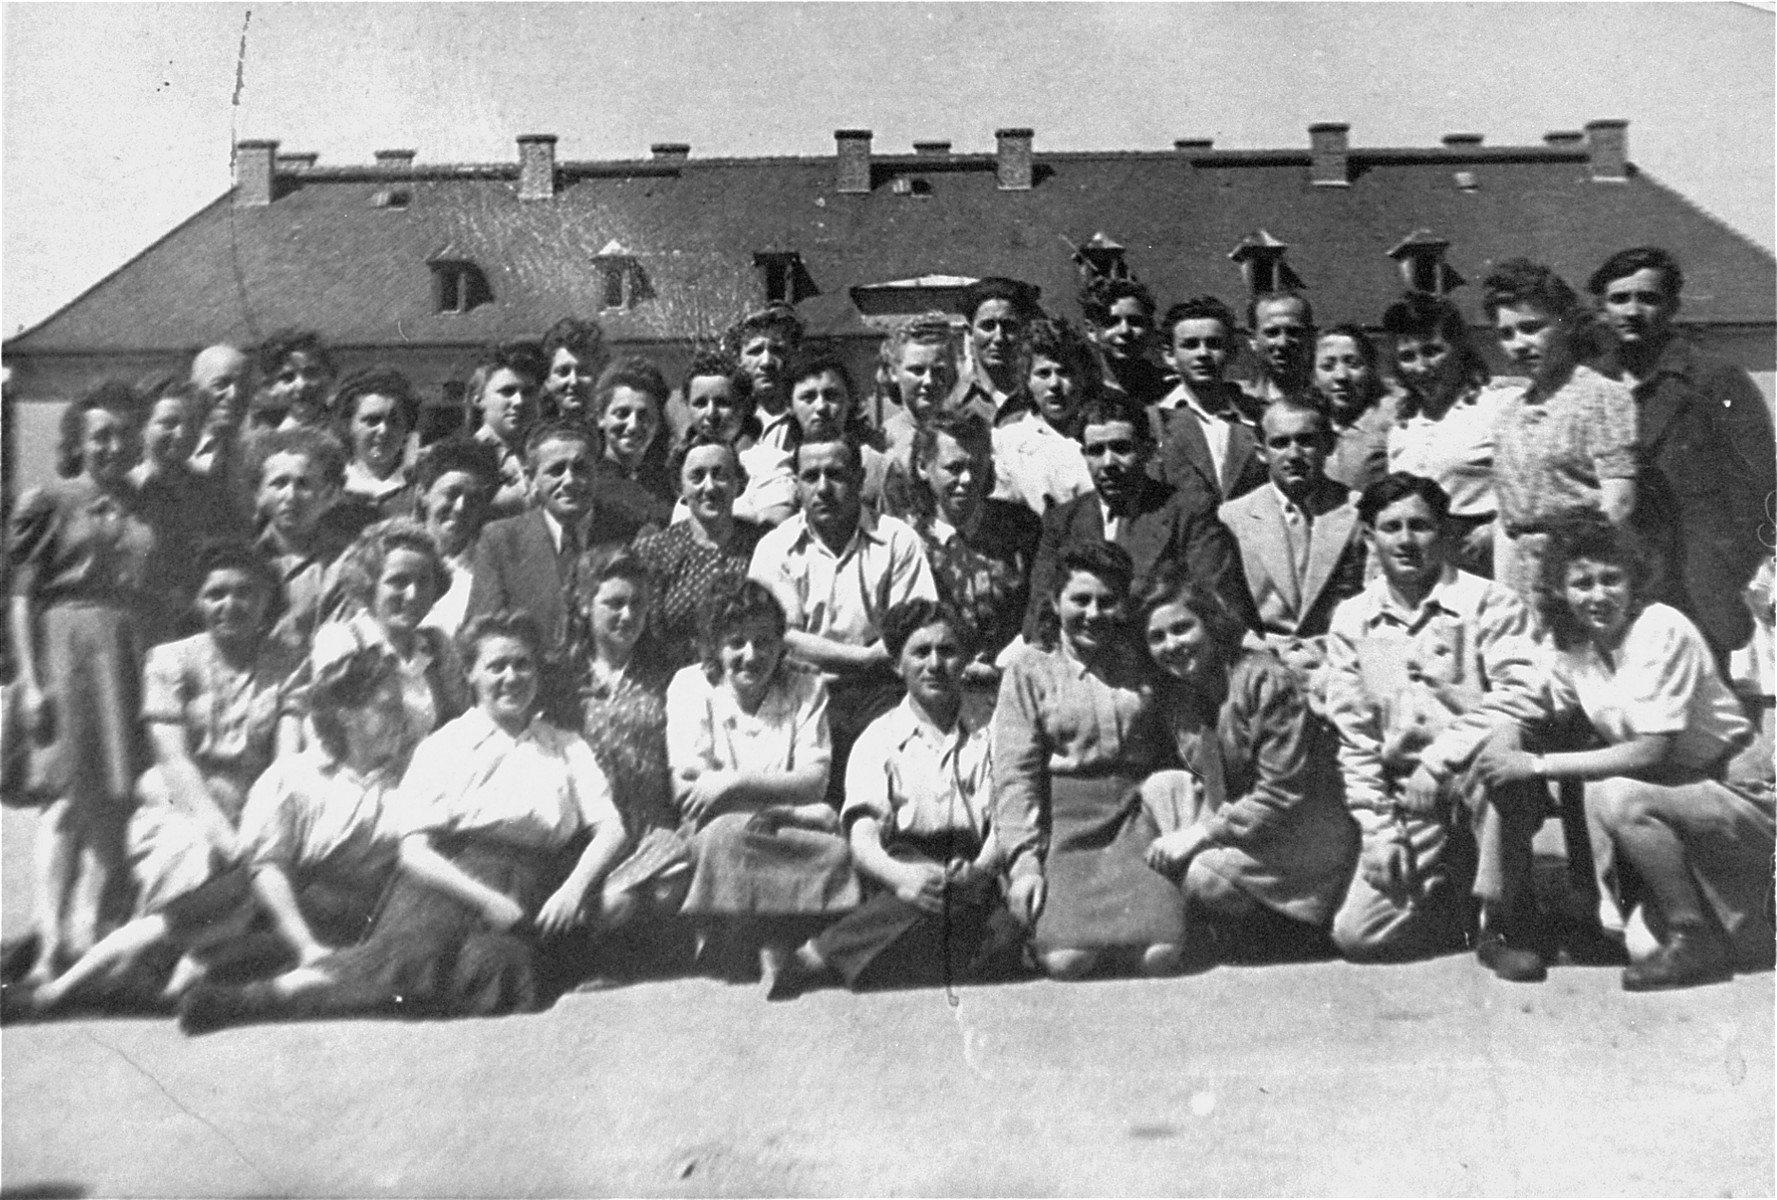 Group portrait of high school students in the Bergen-Belsen displaced persons camp.